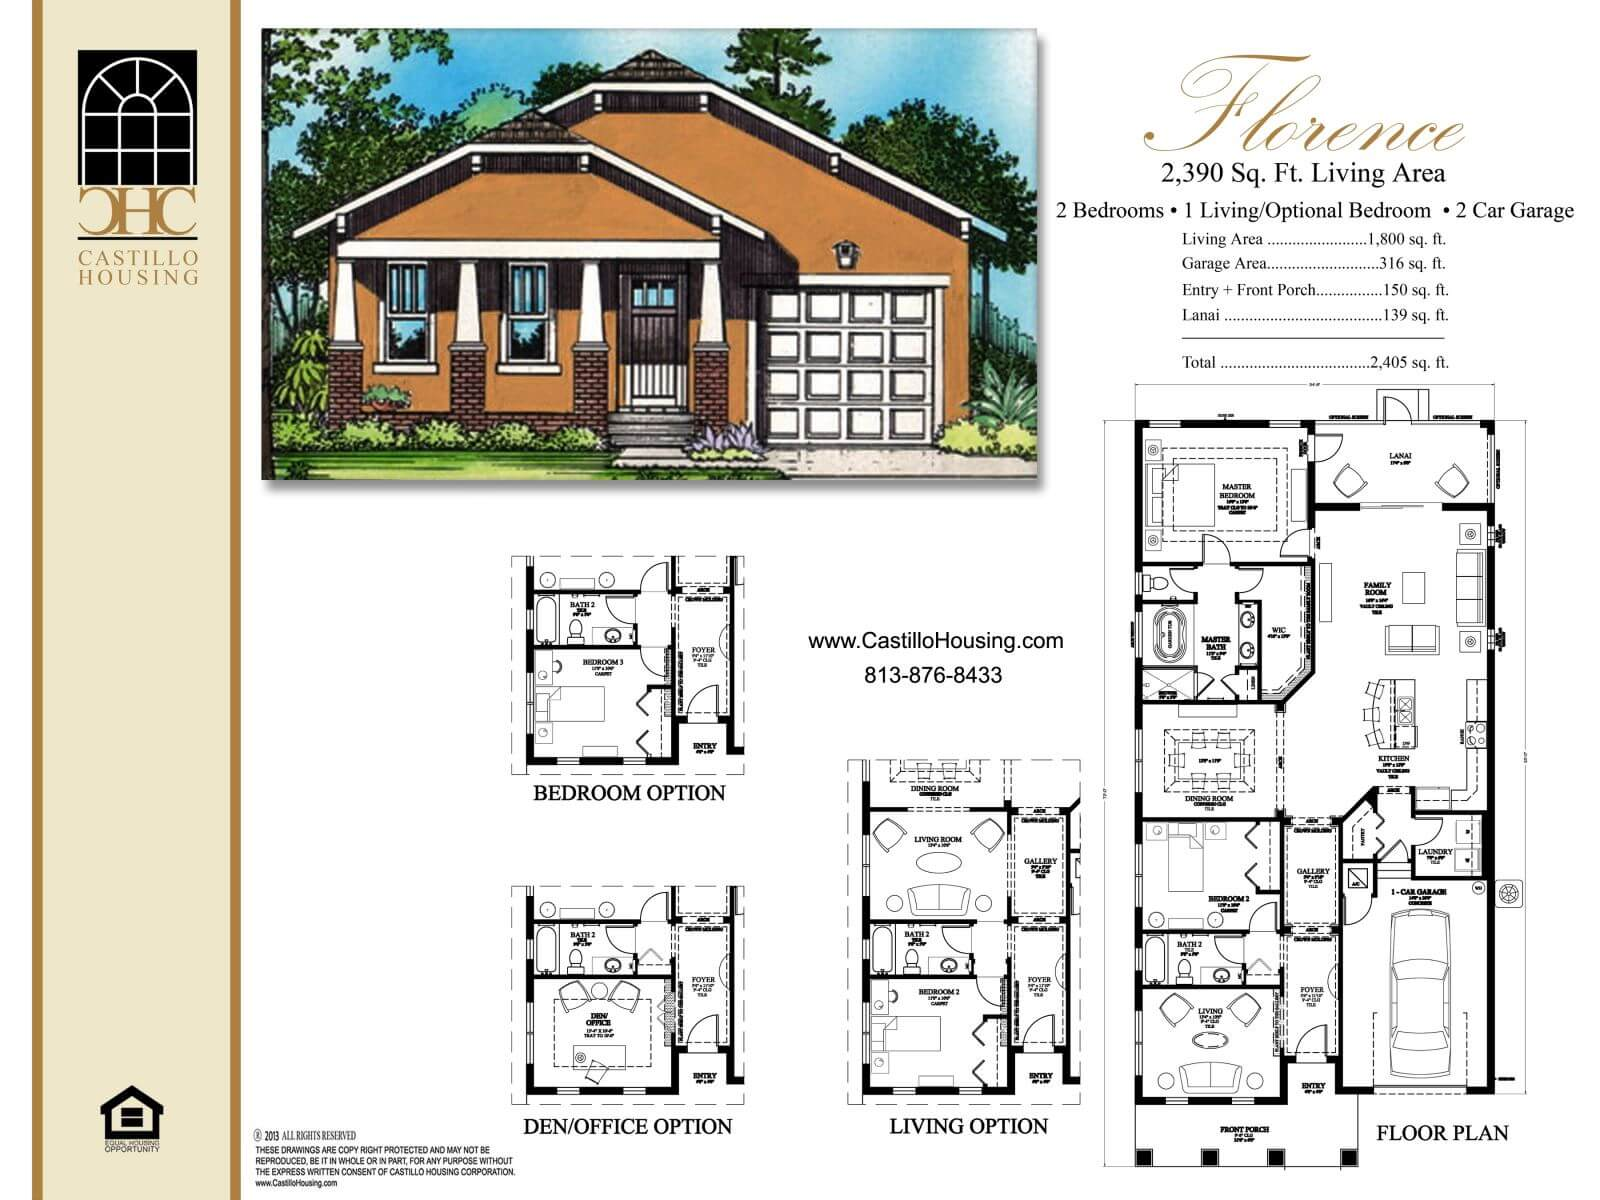 Floor Plans,2,001 SQ FT TO 2,500 SQ FT,1031